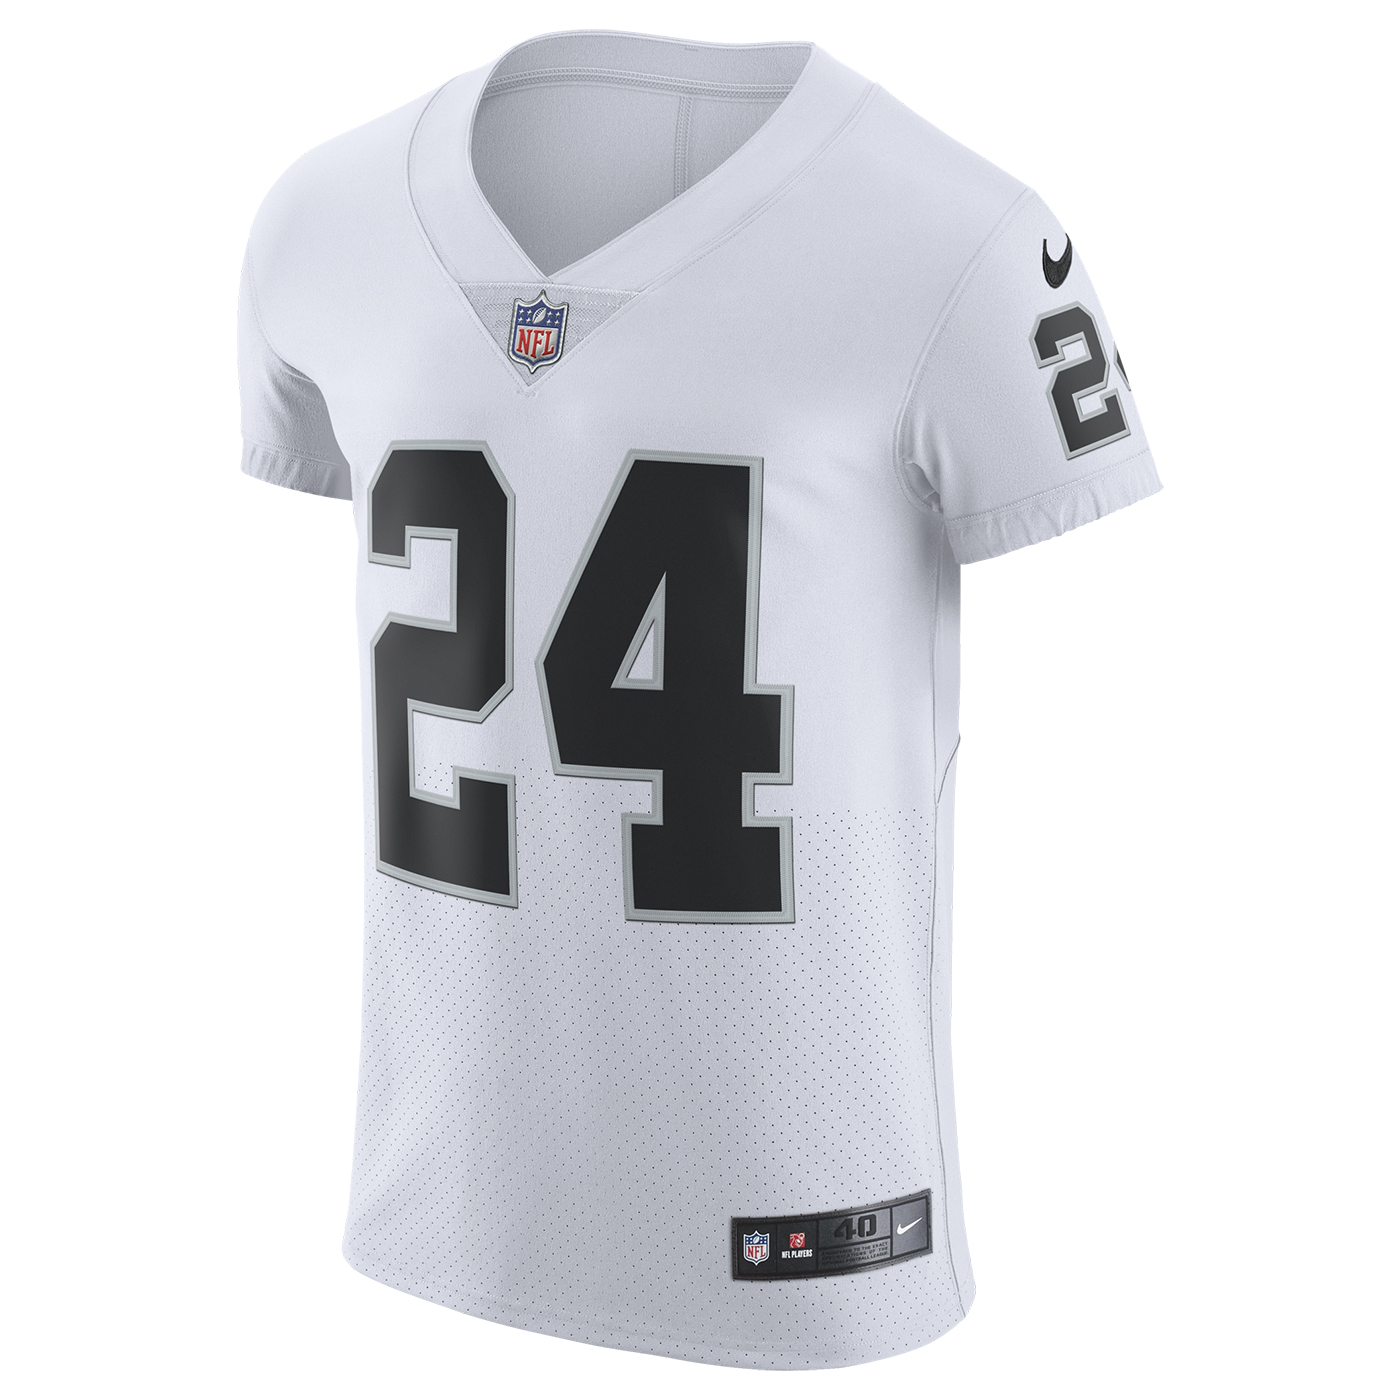 ... Limited Womens Nike Oakland Raiders 24 Marshawn Lynch White Vapor  Untouchable Elite Player NFL Jersey Raiders Nike Marshawn Lynch White Elite  Jersey ... 68acd65a2